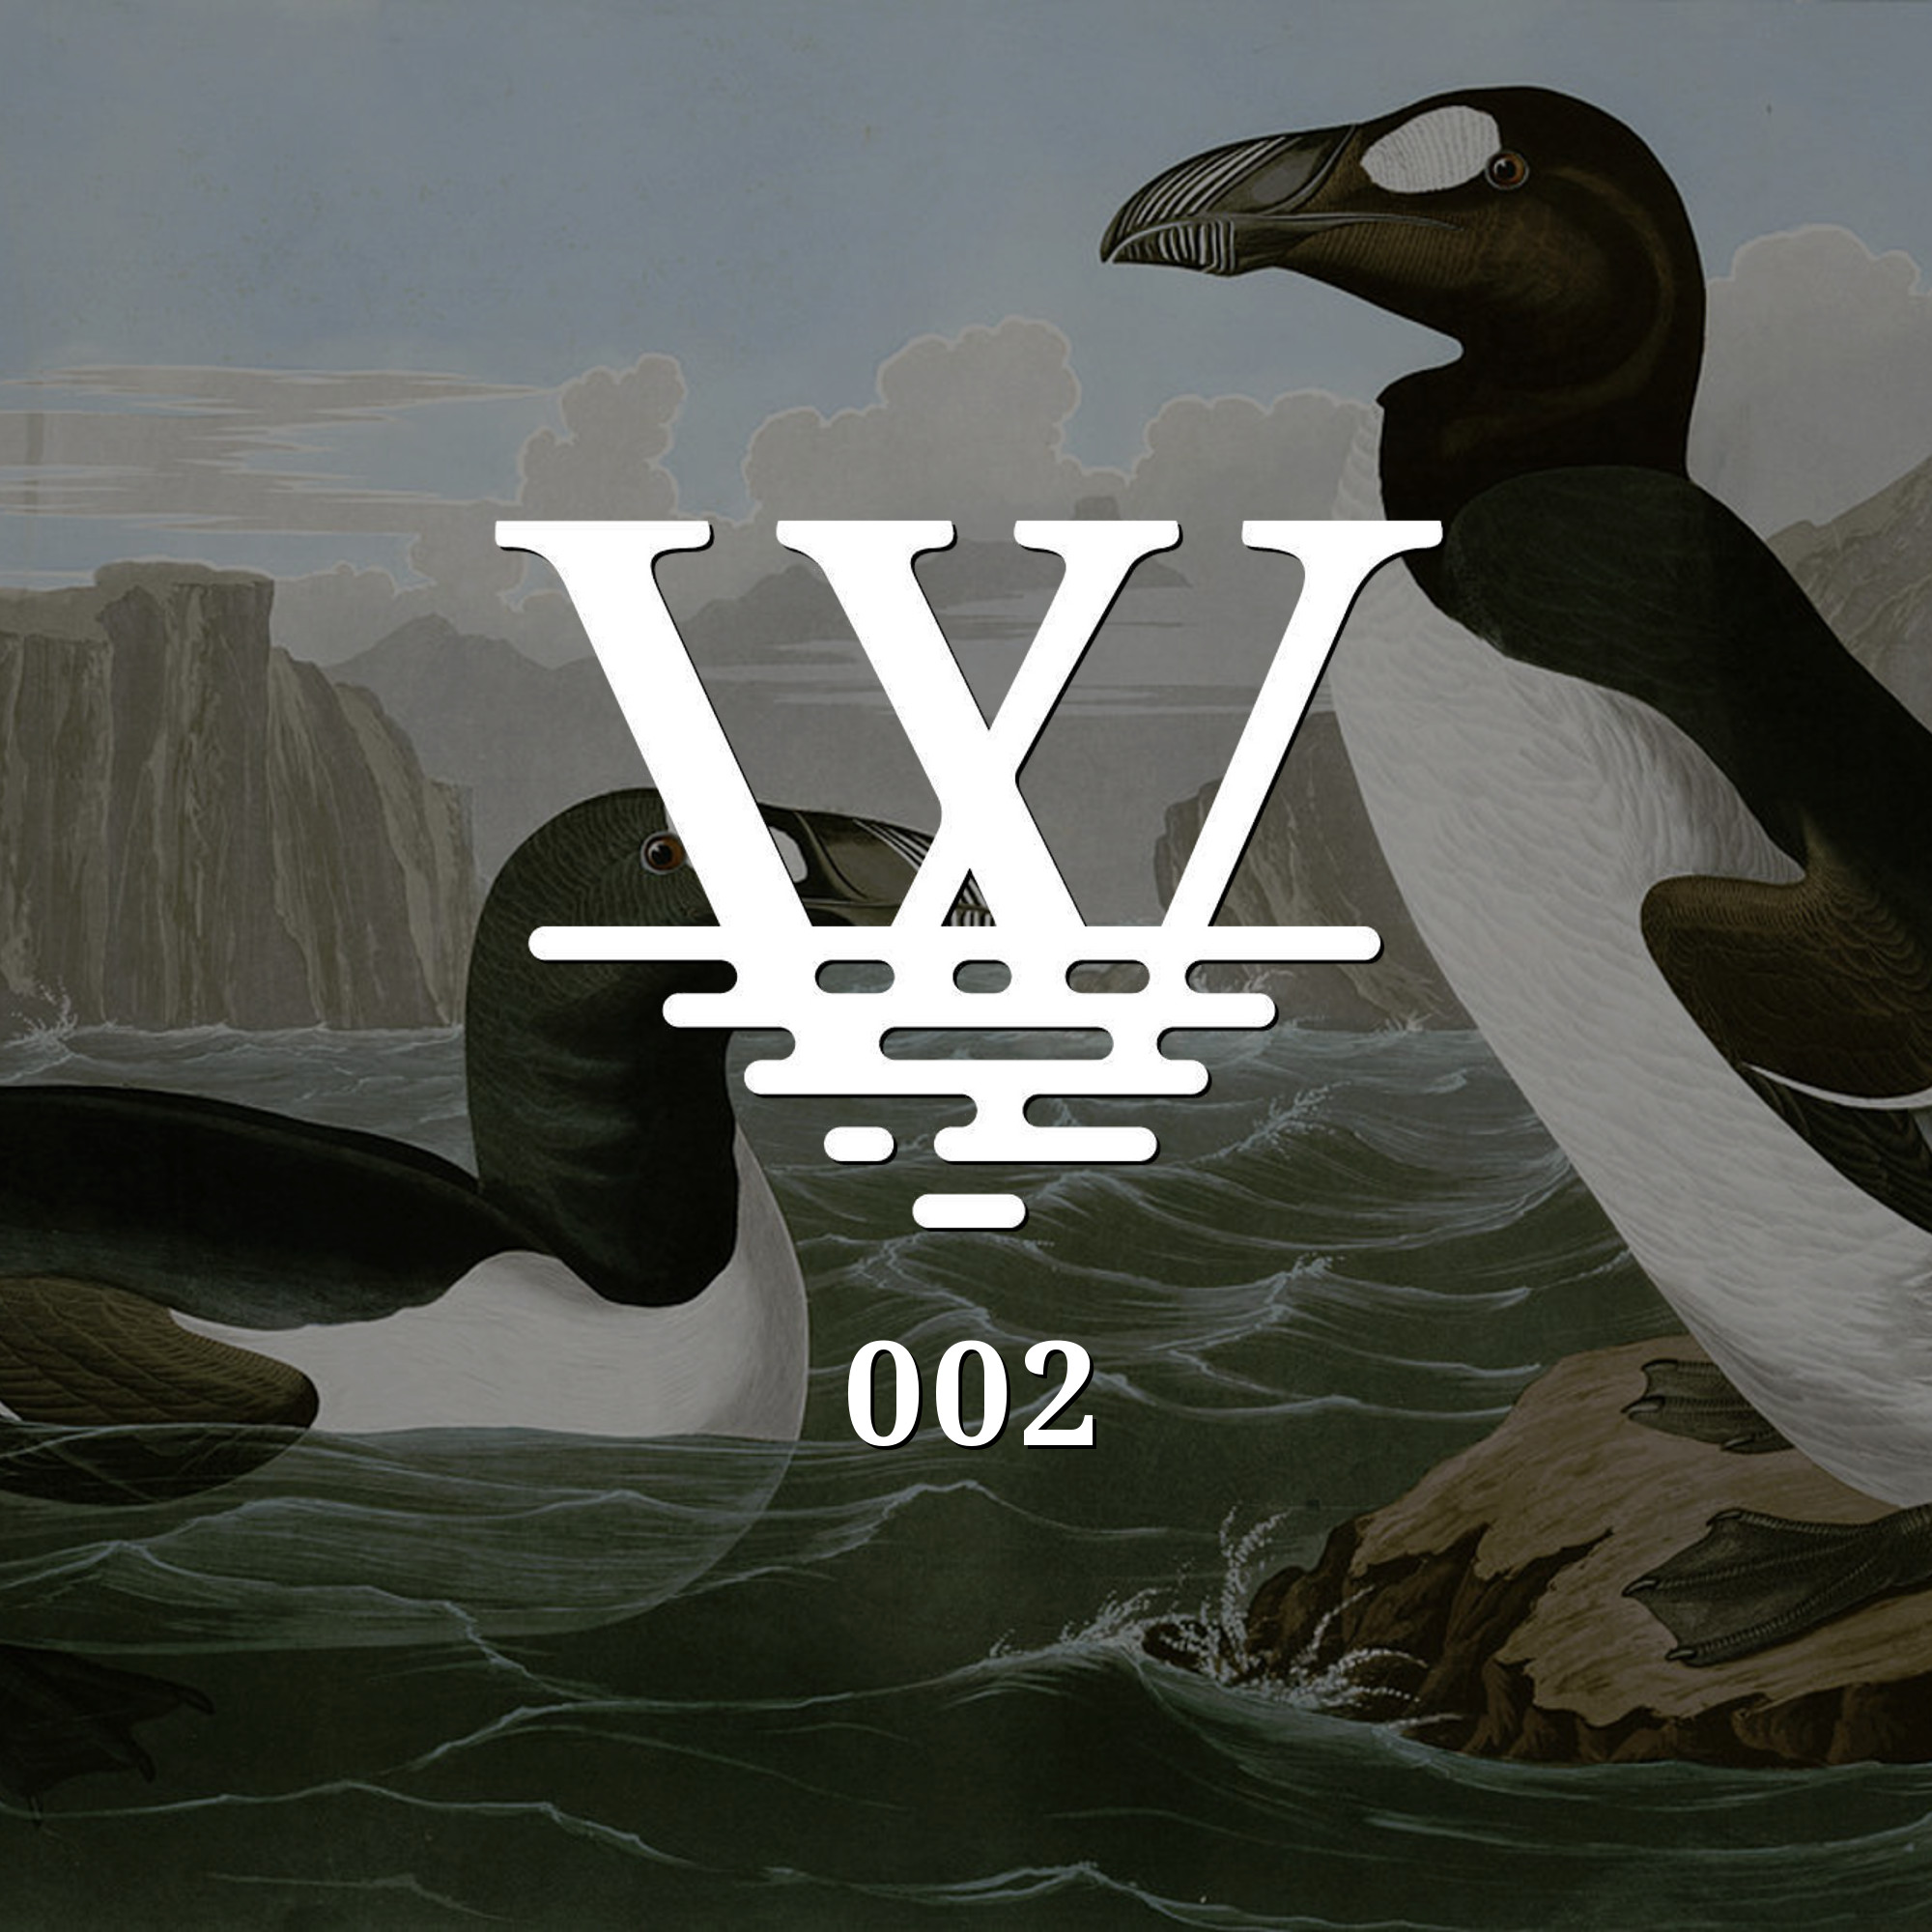 Wikisurfer 002 - Last Of Their Kind